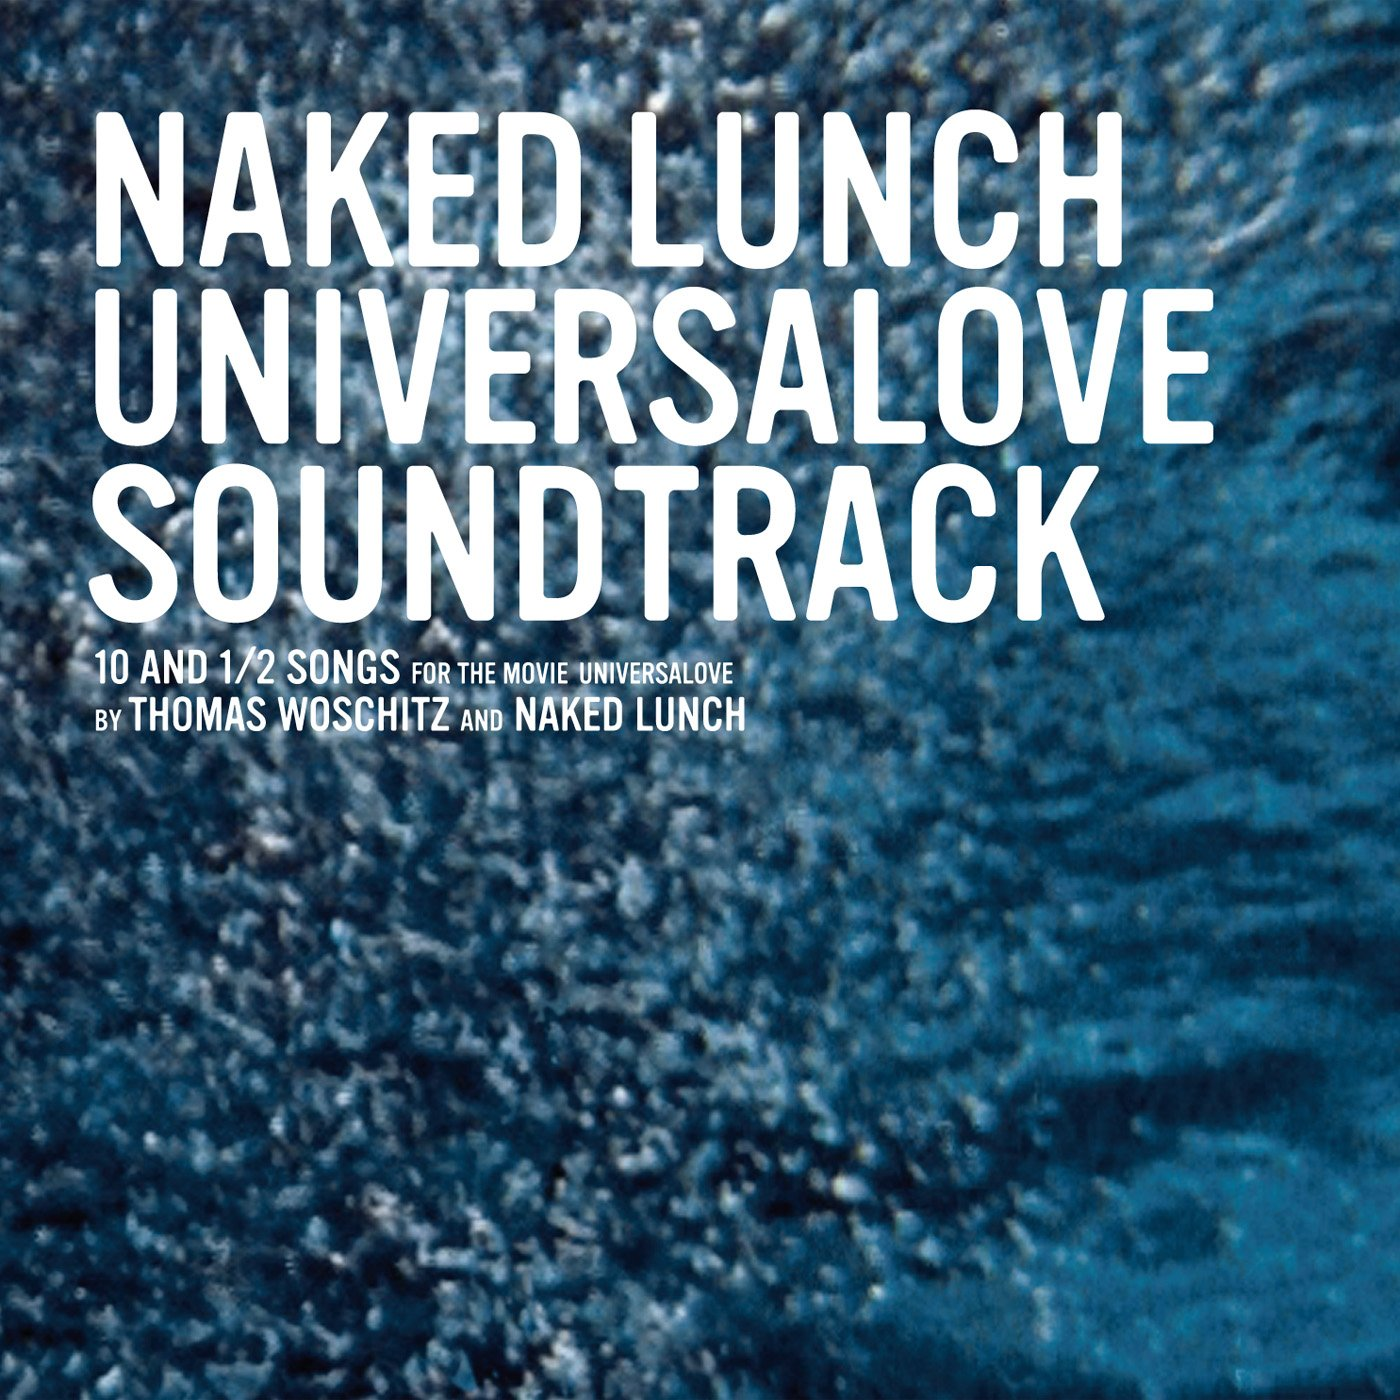 Naked lunch universalove live